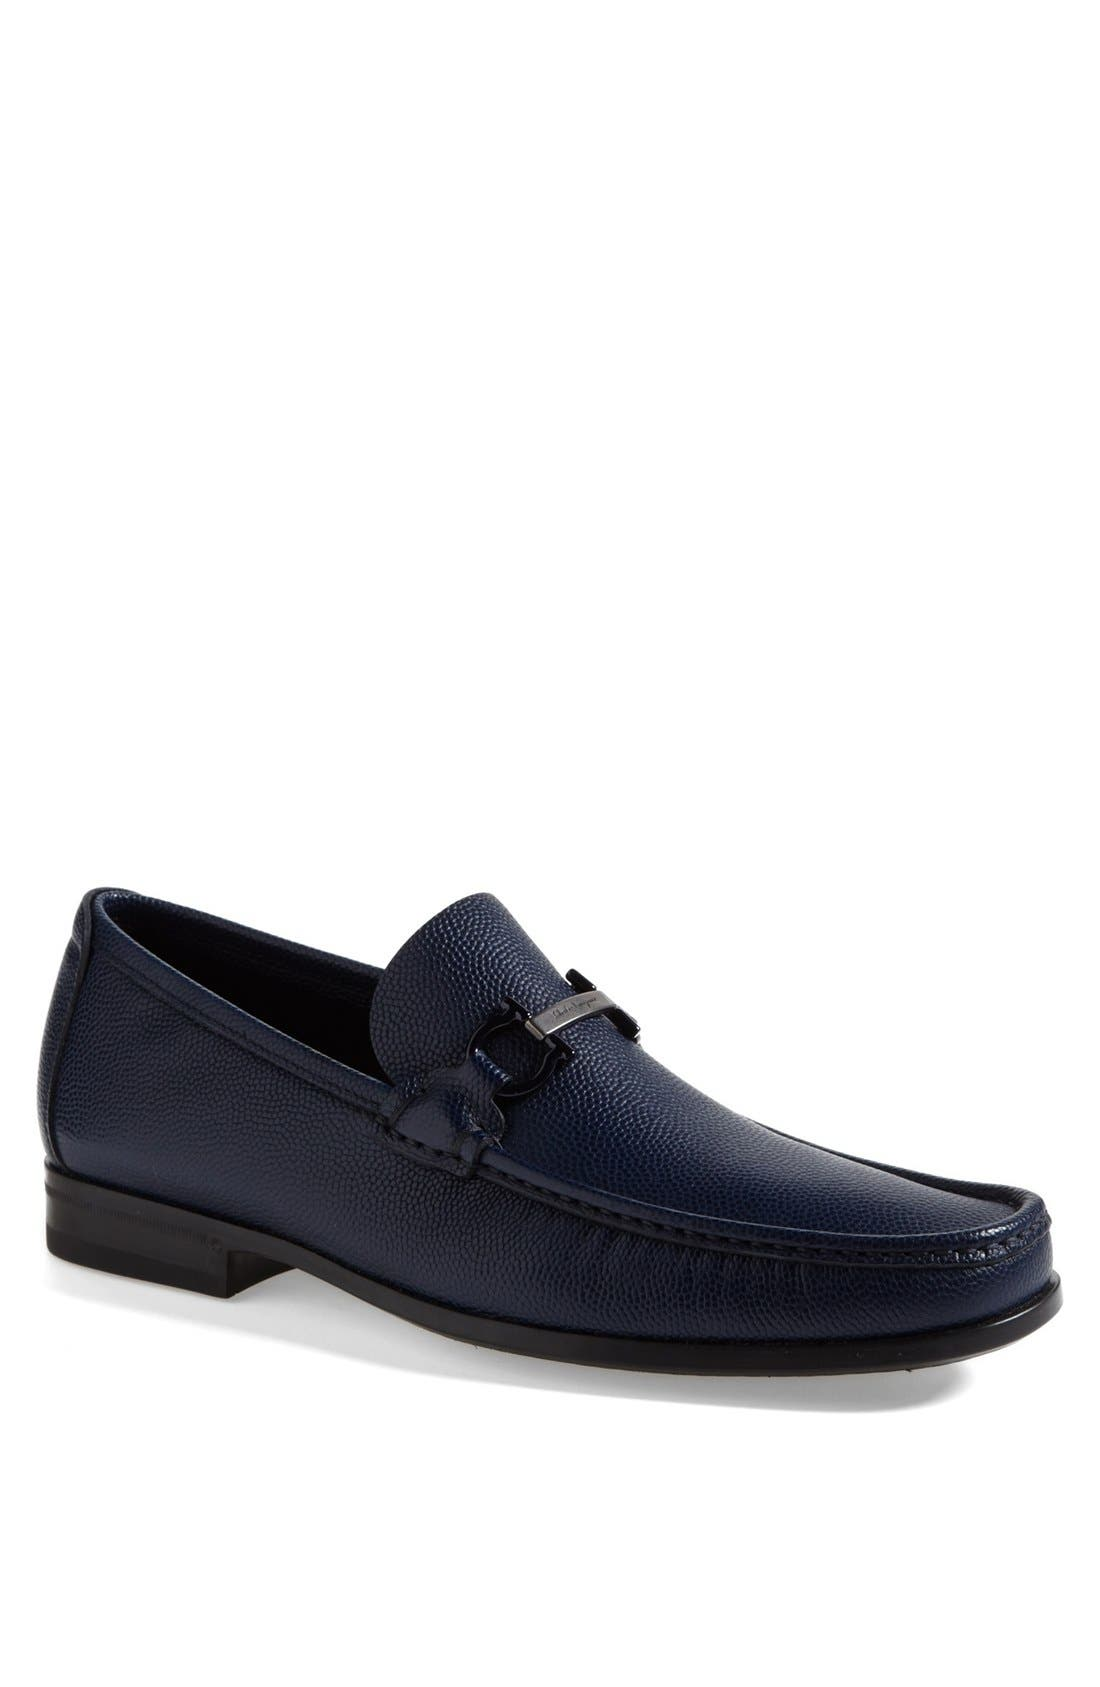 Alternate Image 1 Selected - Salvatore Ferragamo 'Regal' Pebbled Leather Loafer